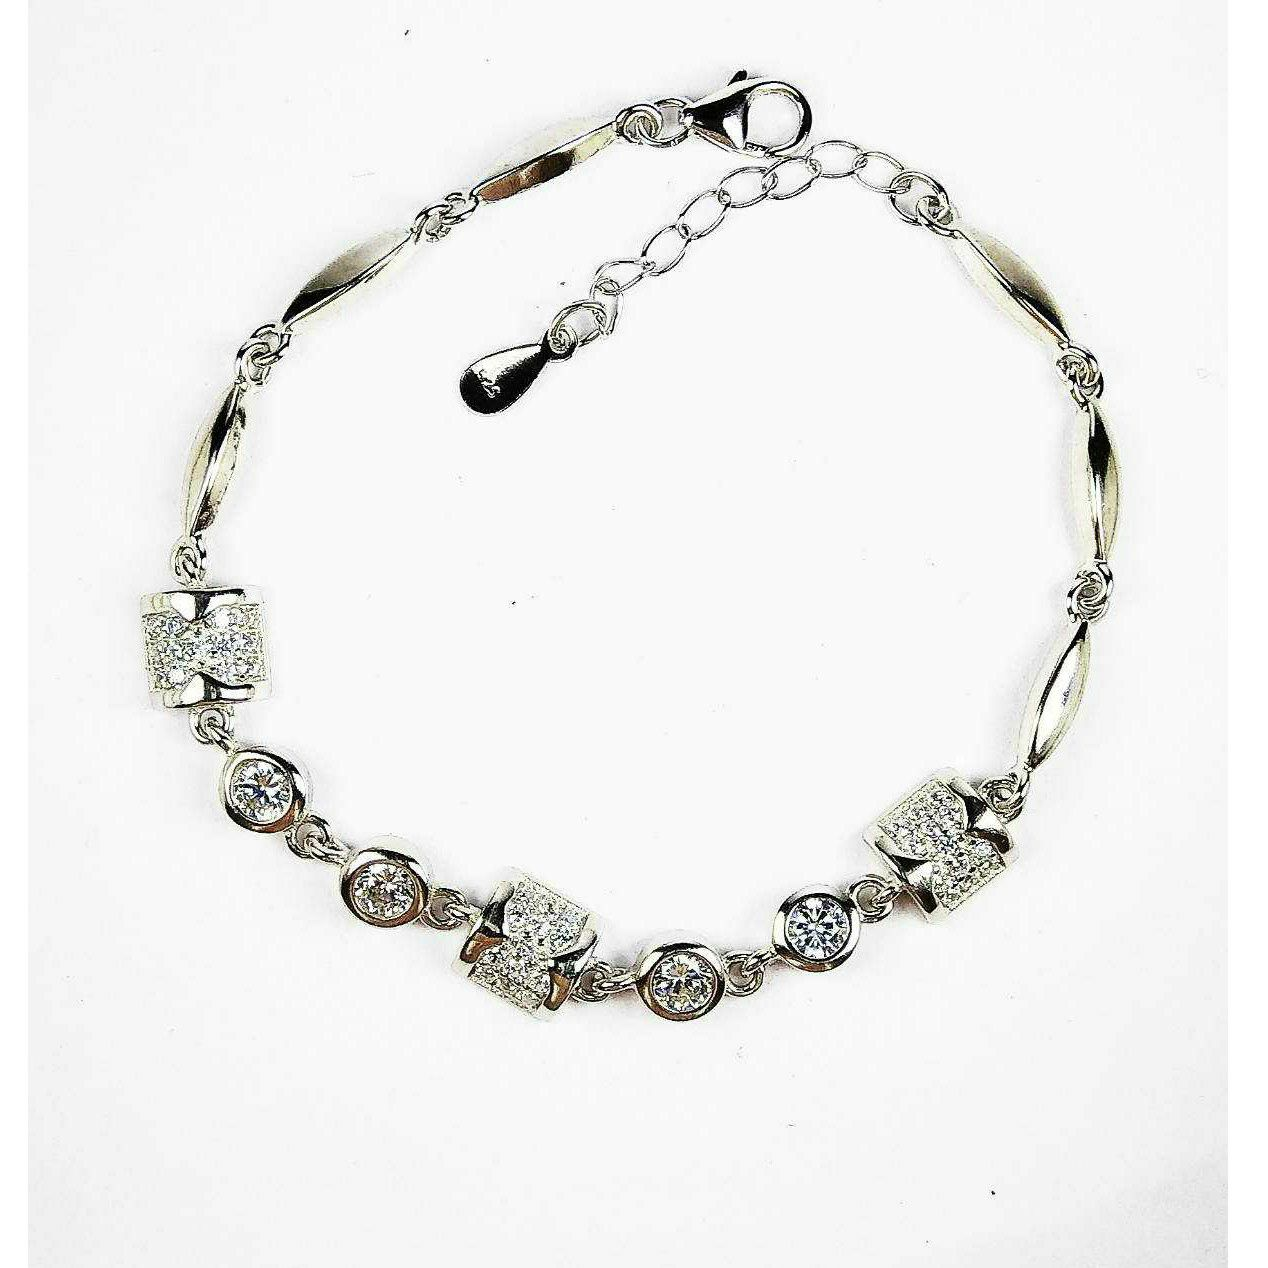 Fancy 925 Silver Ladies Bracelet With Stones